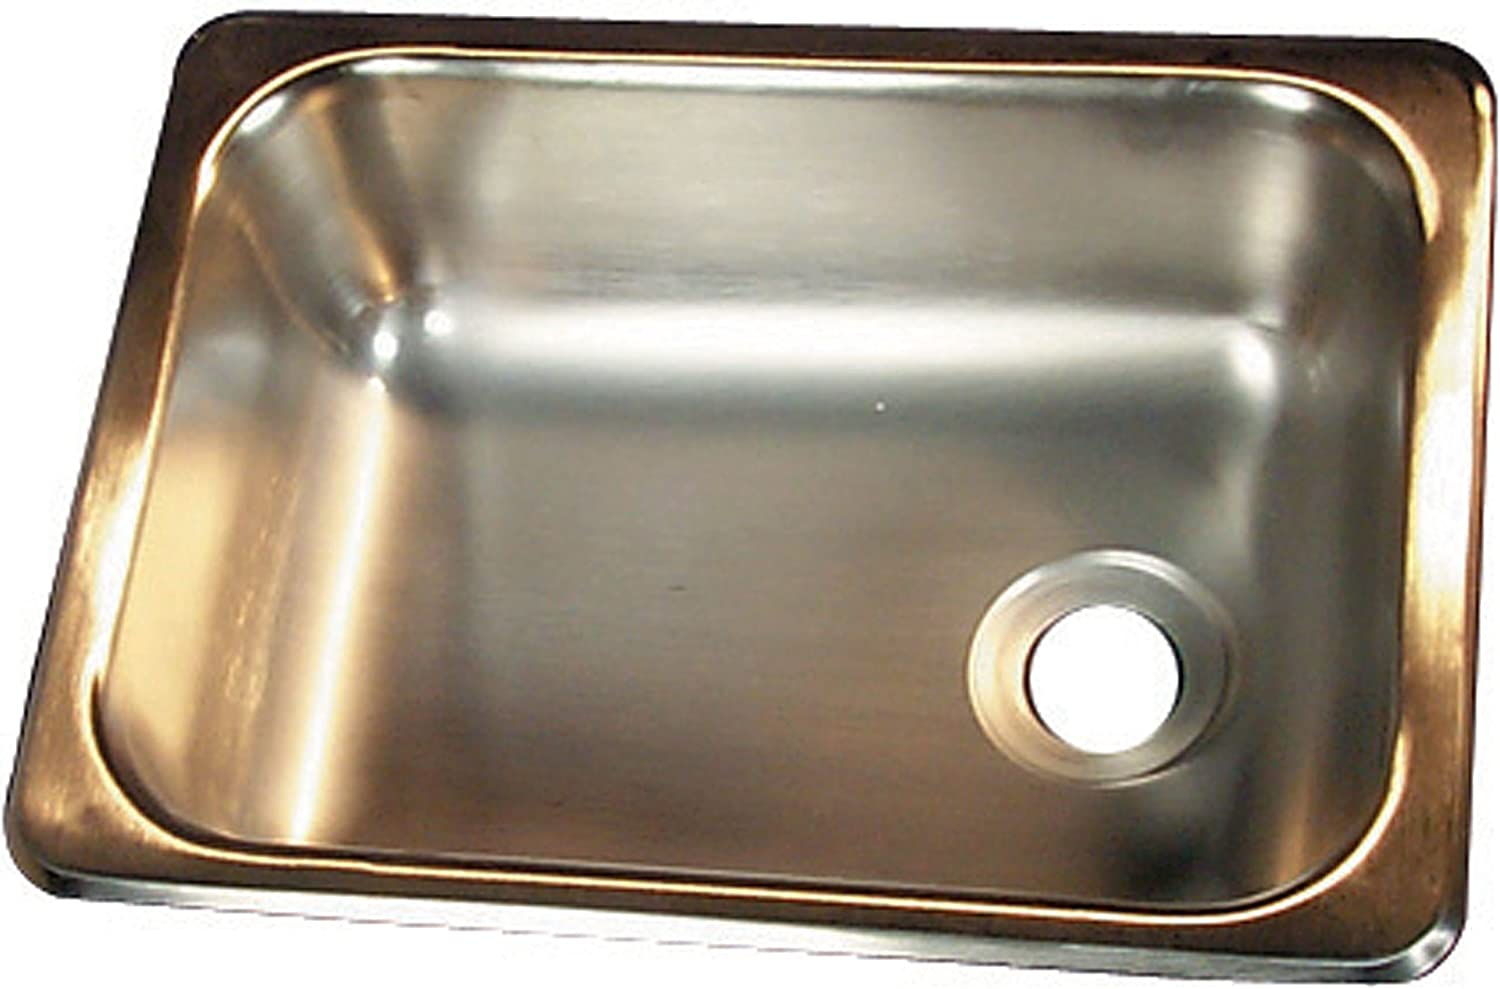 Heng s SSS-1315-5-22 Stainless Steel Single Sink